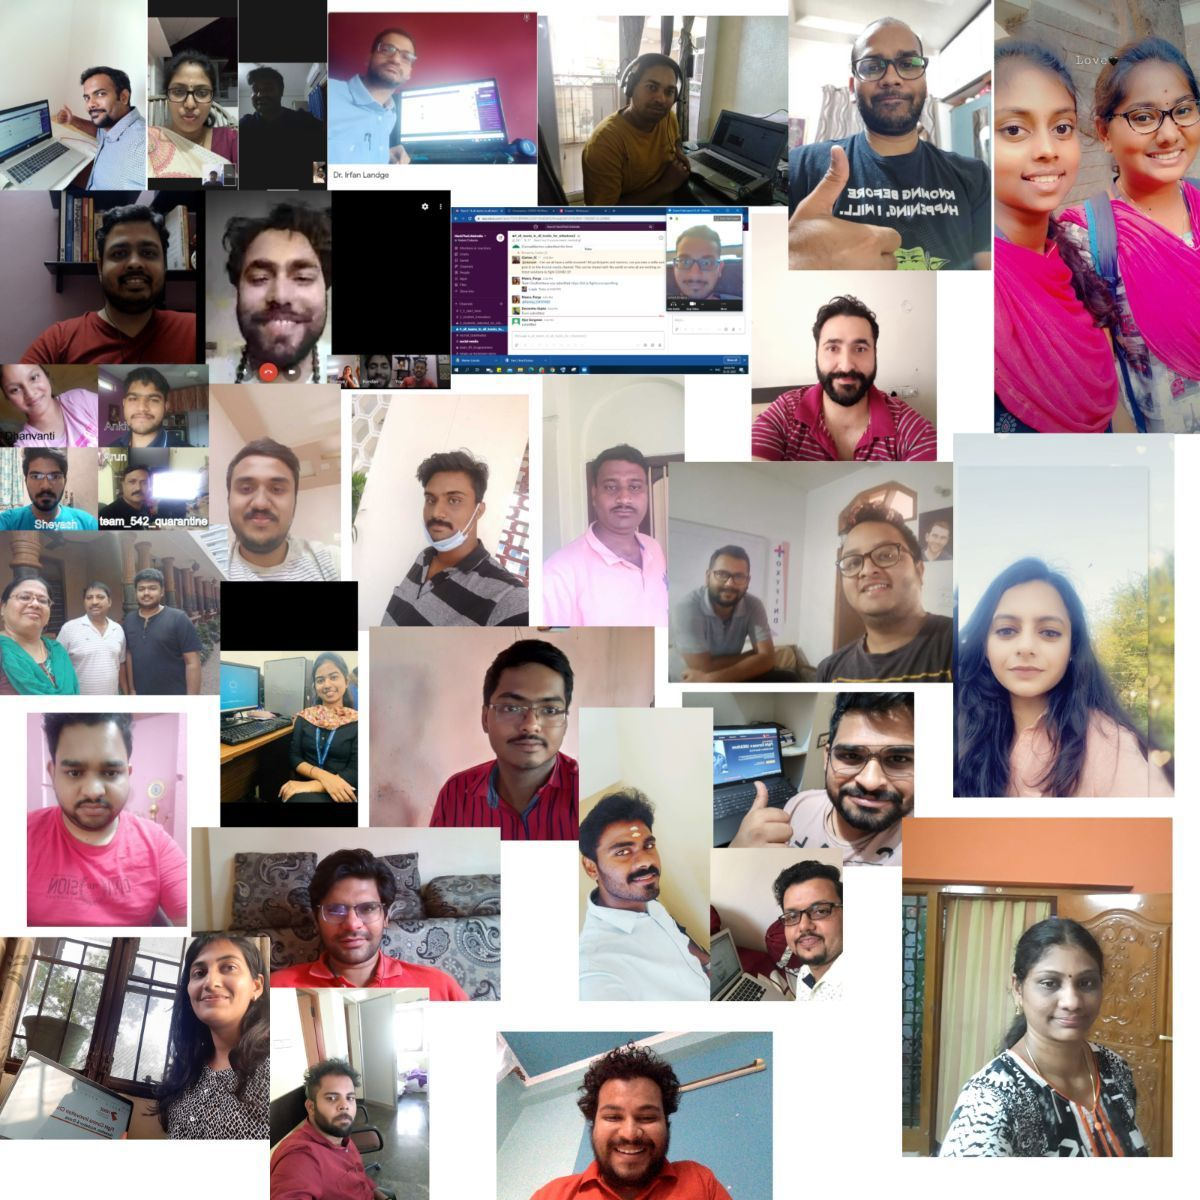 Social-media-selfie-collage-campaign-of-particippants